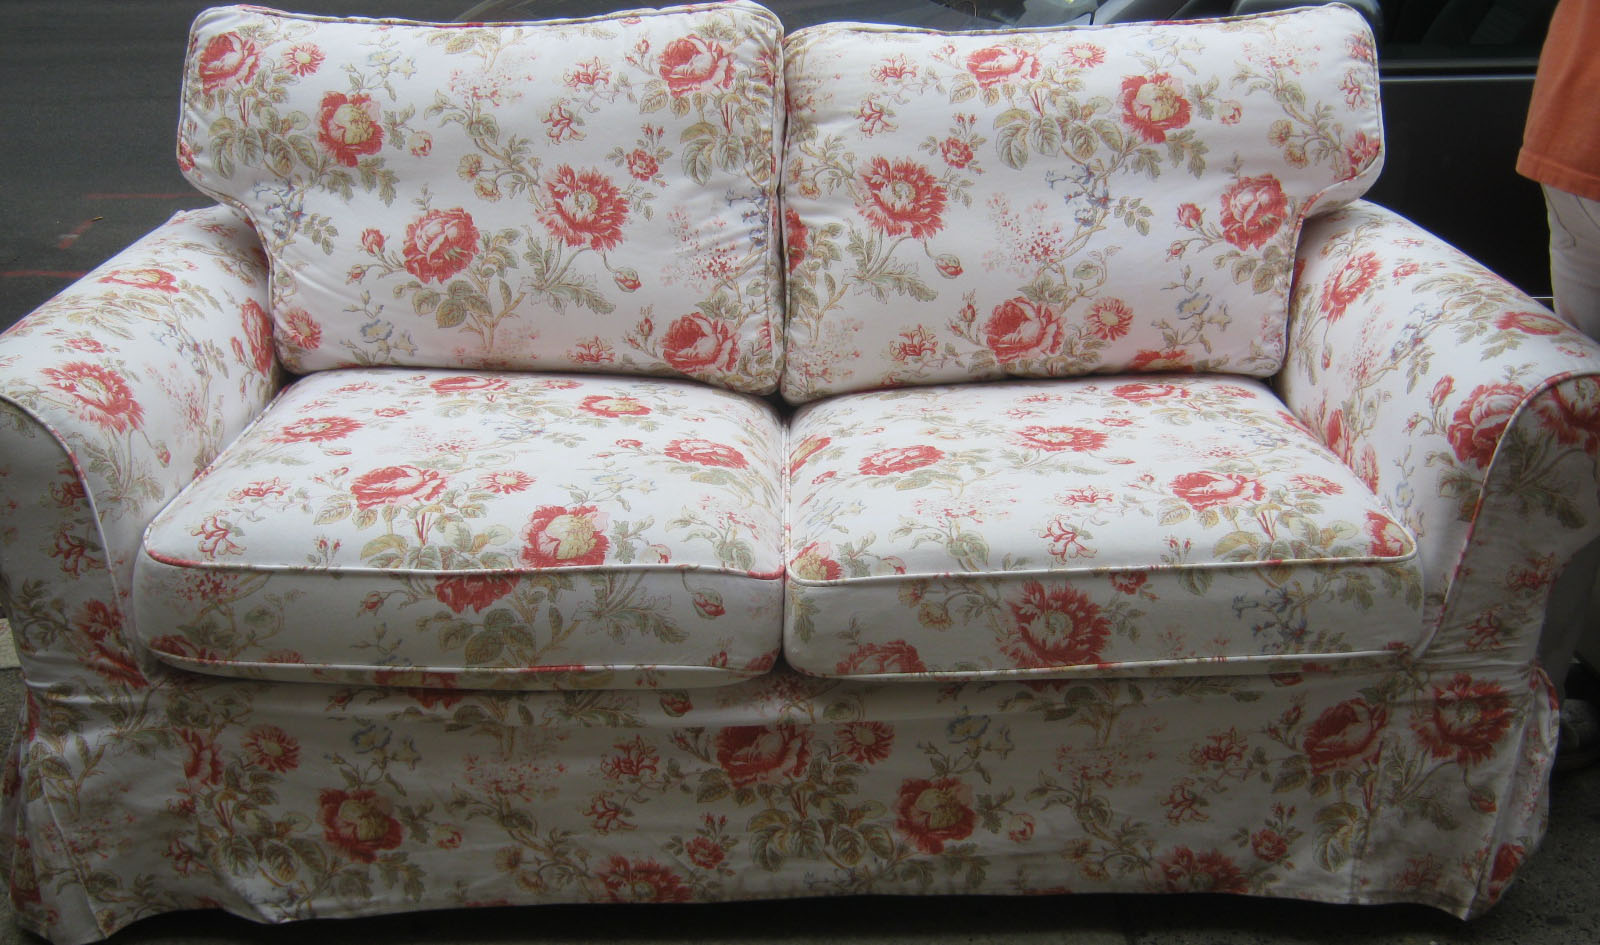 Uhuru Furniture Amp Collectibles Floral Sofa And Loveseat